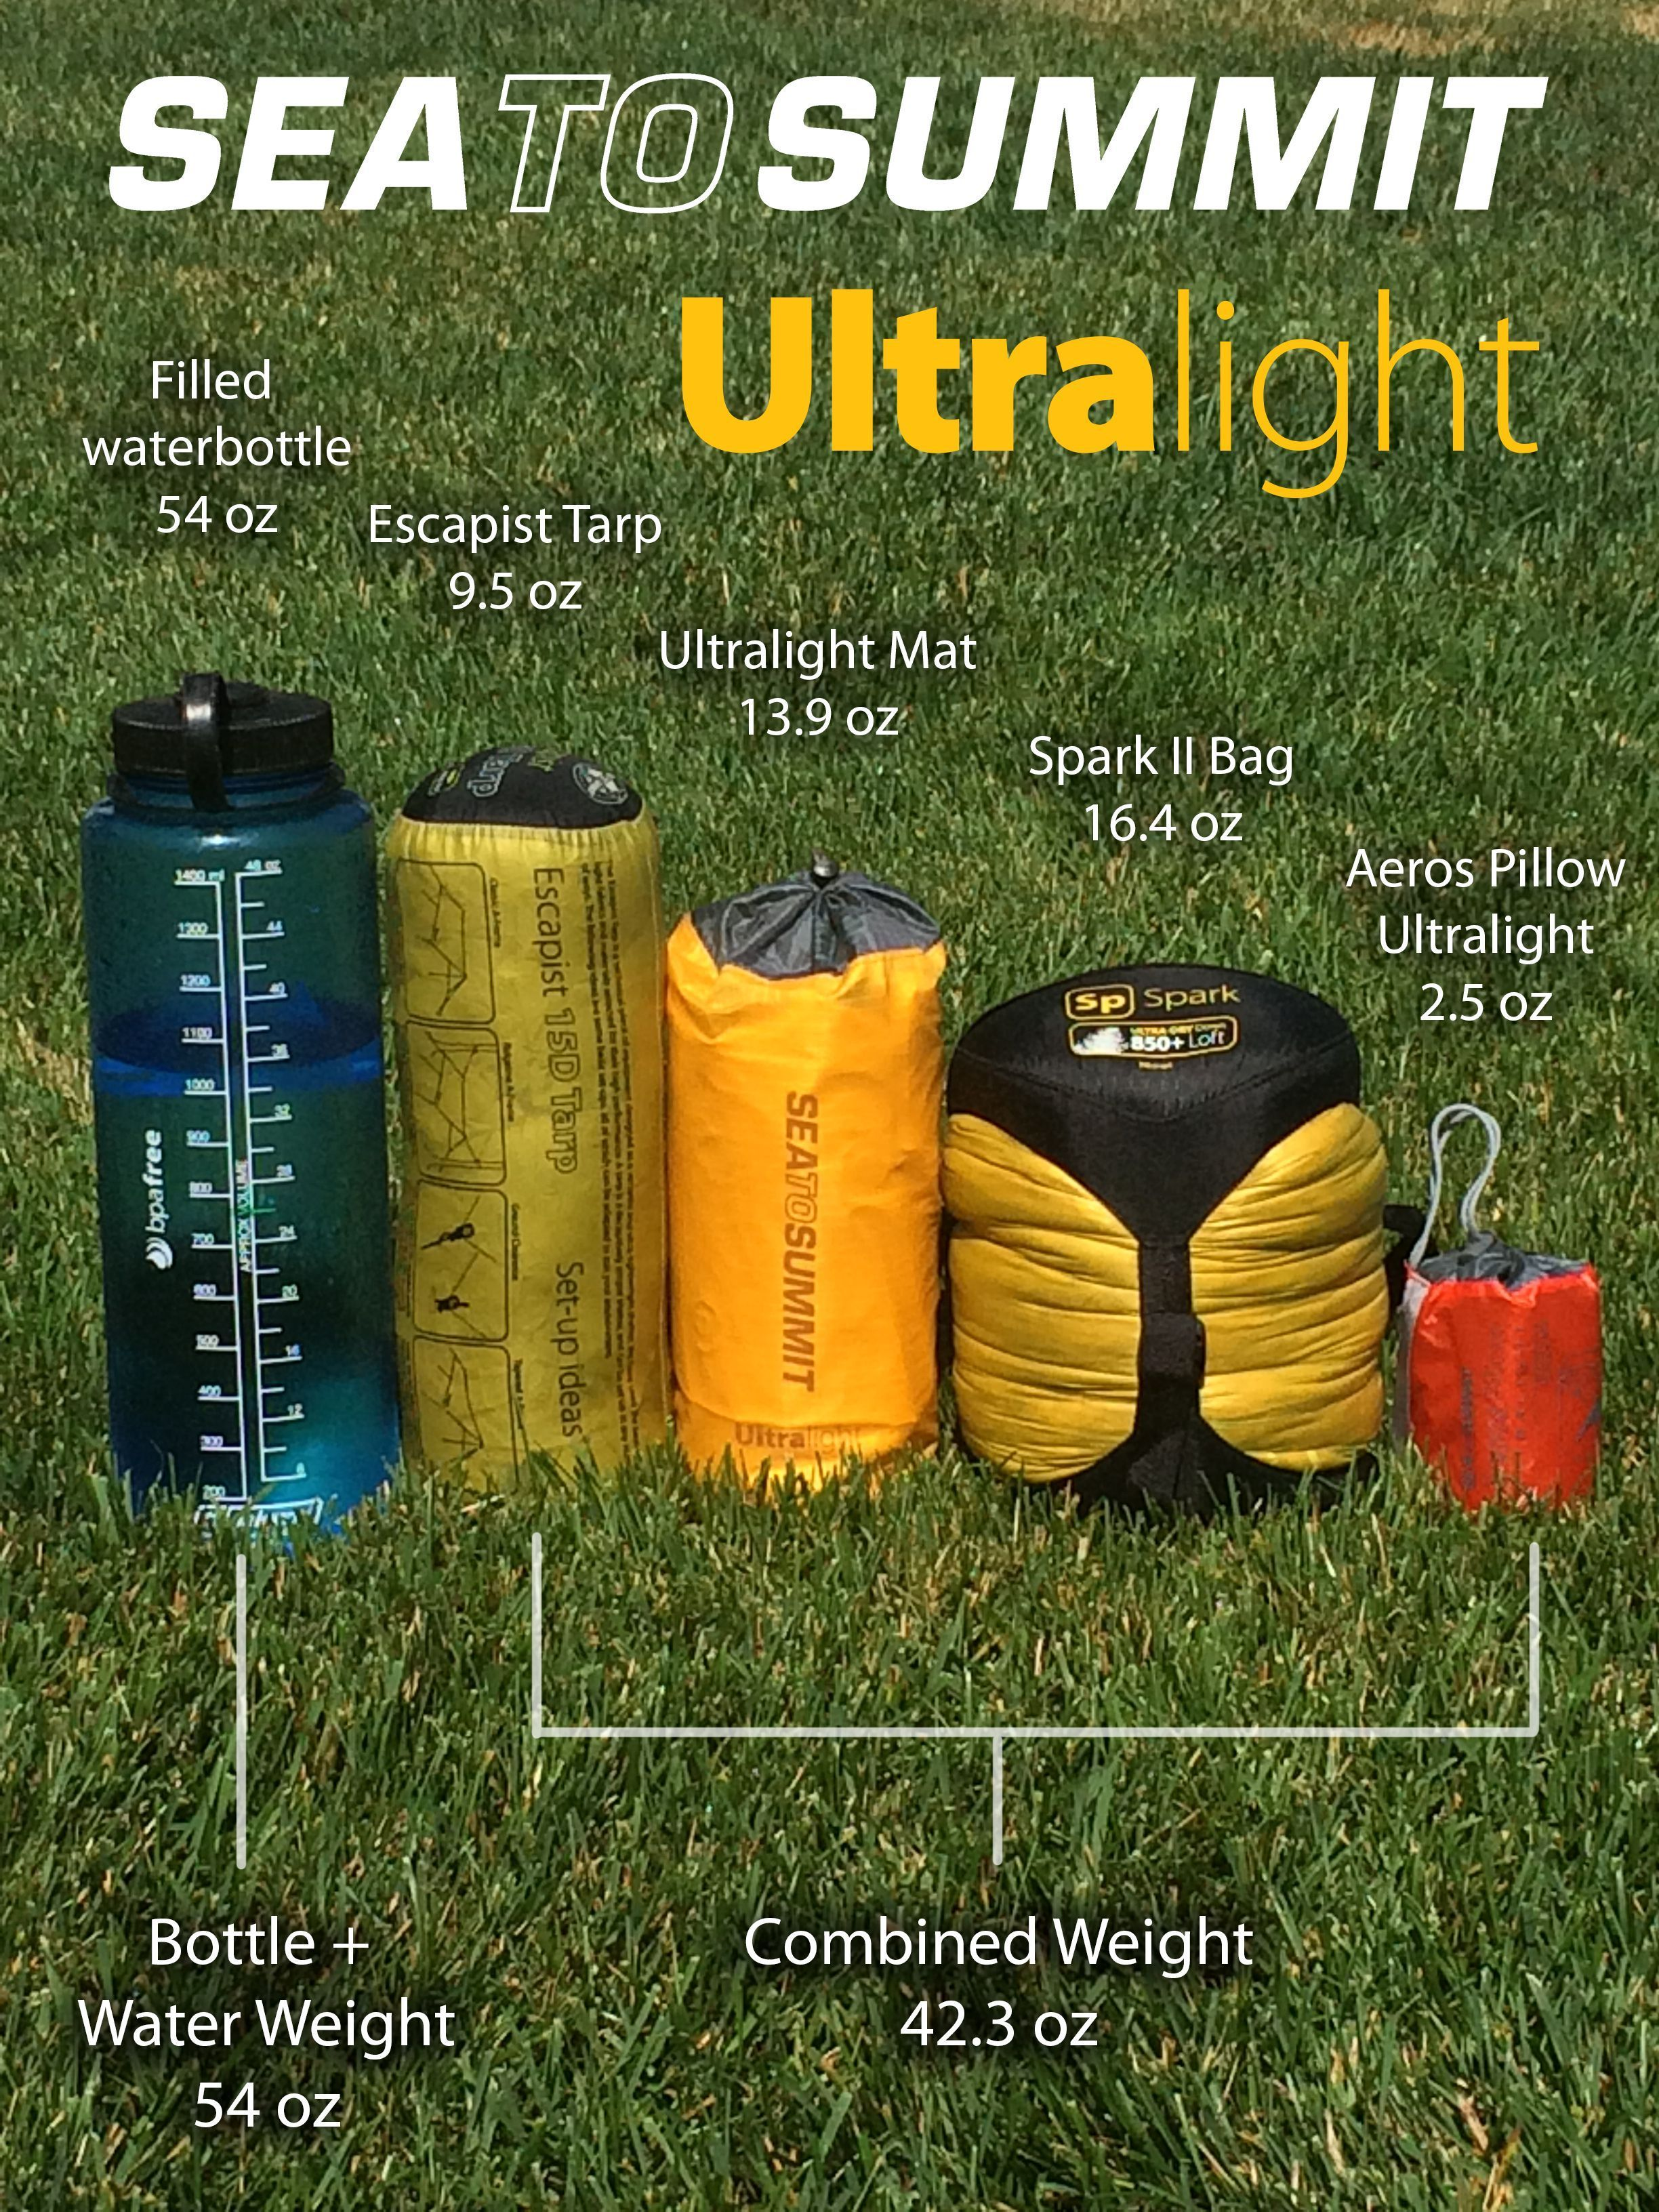 our entire line of ultralight sleep system products weigh less than